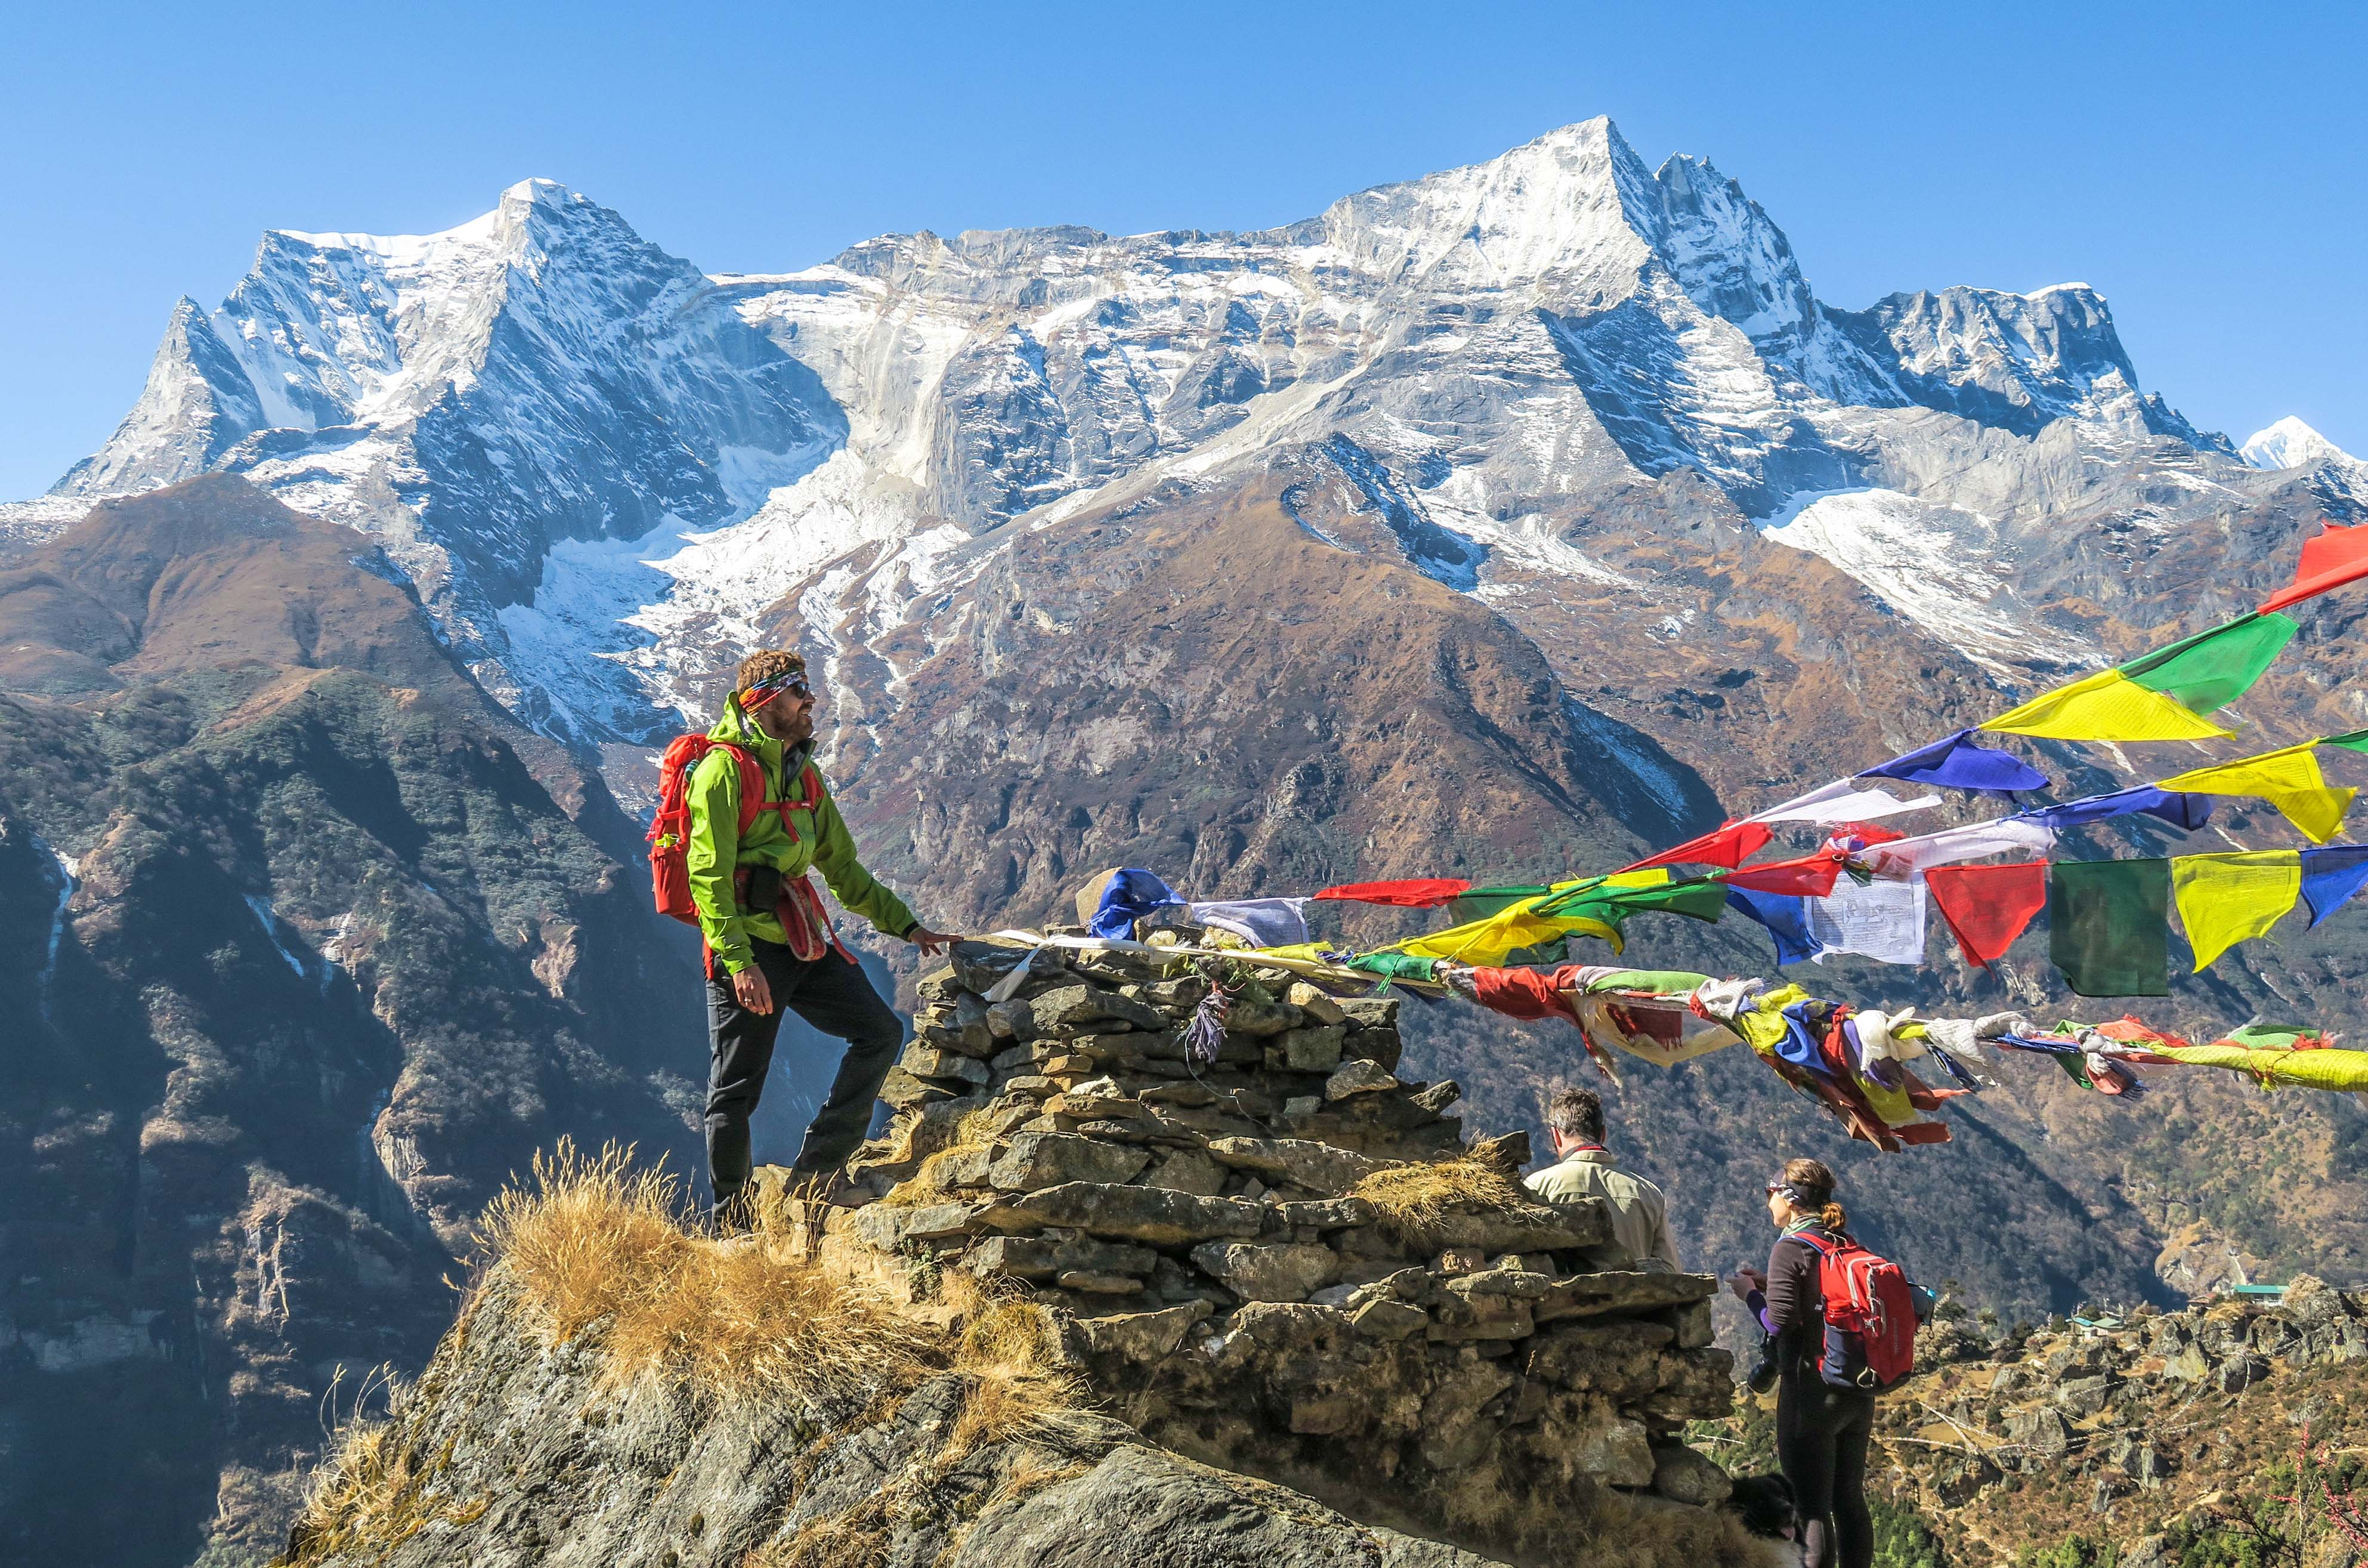 Everest climbers to pick up own faecal waste